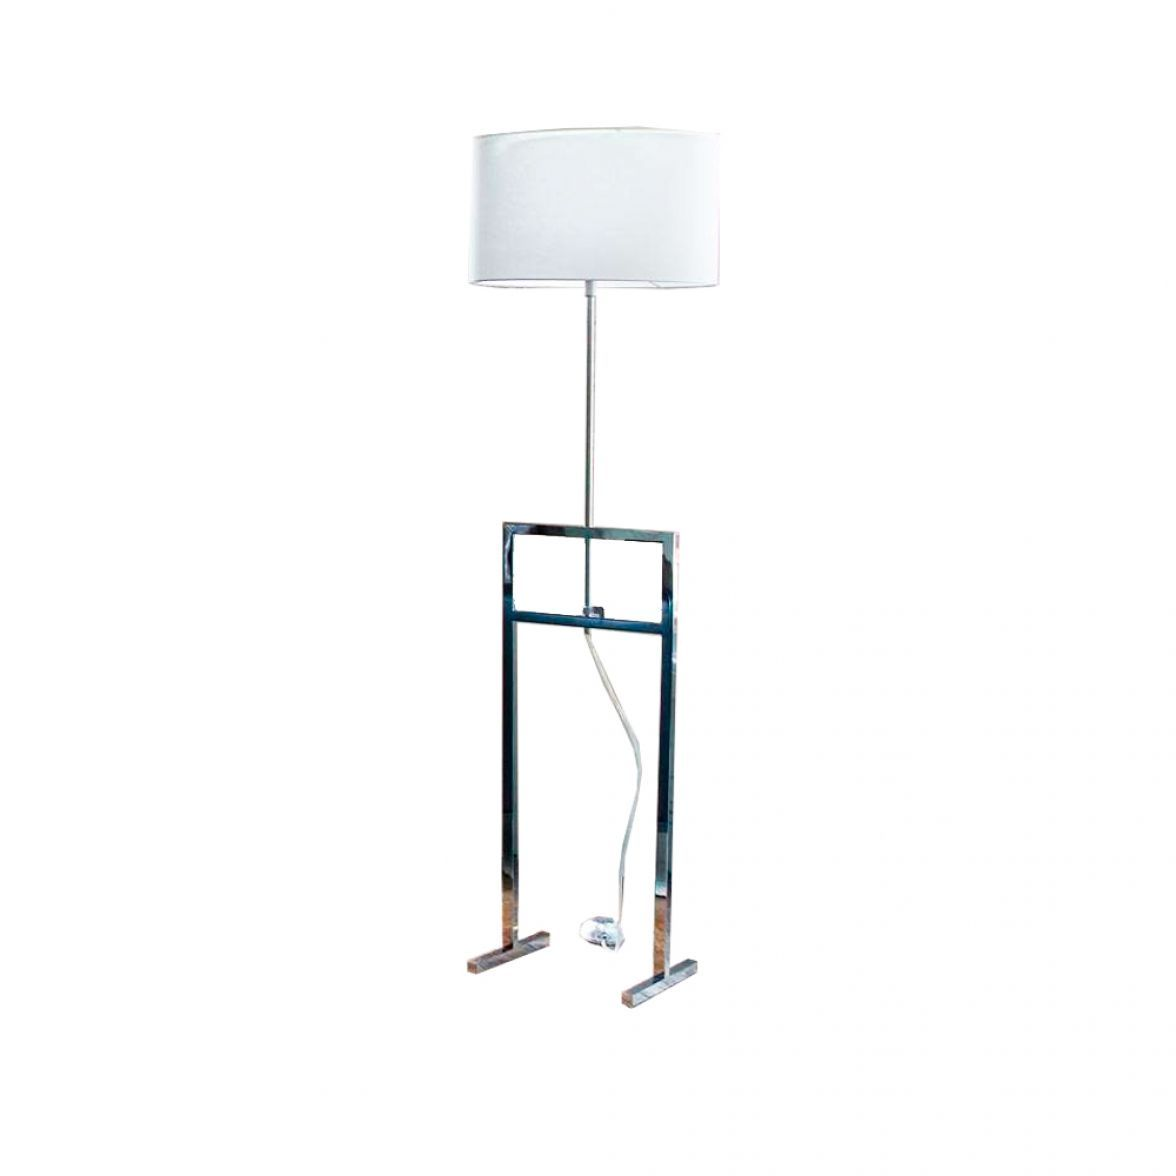 Leukon floor lamp фото цена